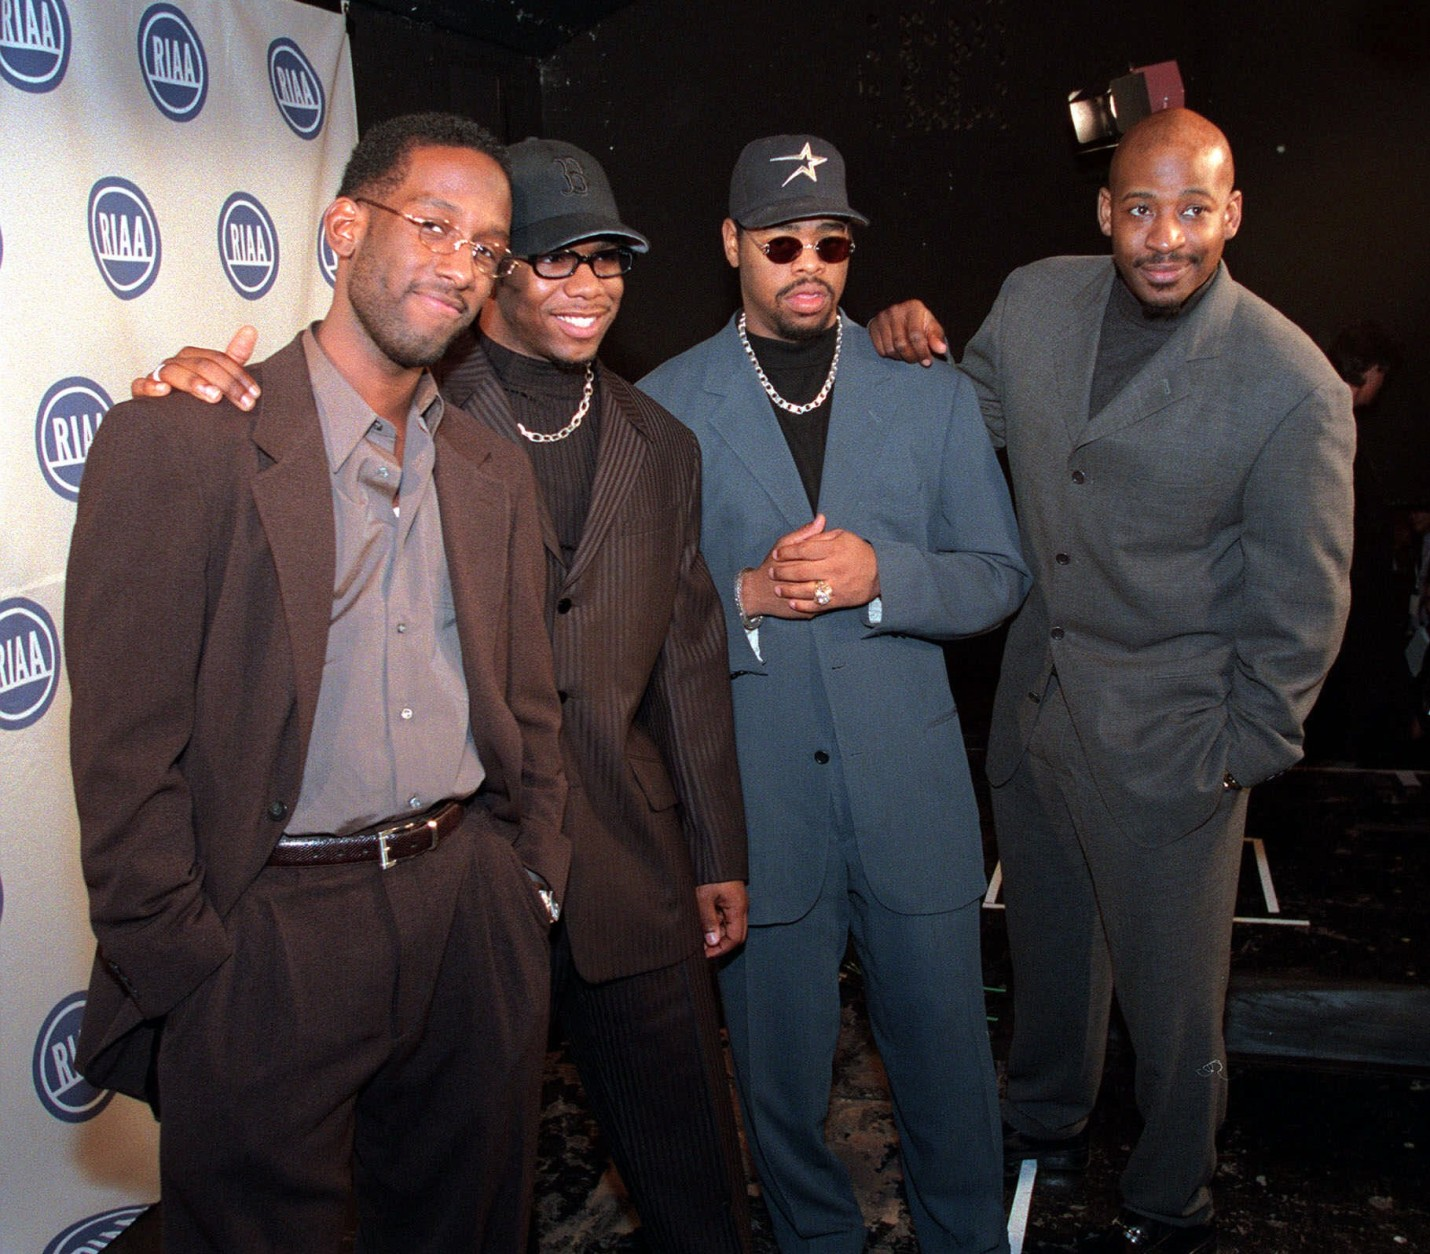 """Members of the group """"Boyz II Men,"""" from left, Shawn Stockman, Wanye Morris, Nate Morris, and Michael McCary, pose for the media after receiving their """"Diamond Award"""" from the Recording Industry Association of America, in New York Tuesday, March 16, 1999. RIAA has created the award to recognize performers who have sold 10 million units of a single title in the United States. (AP Photo/Stuart Ramson)"""